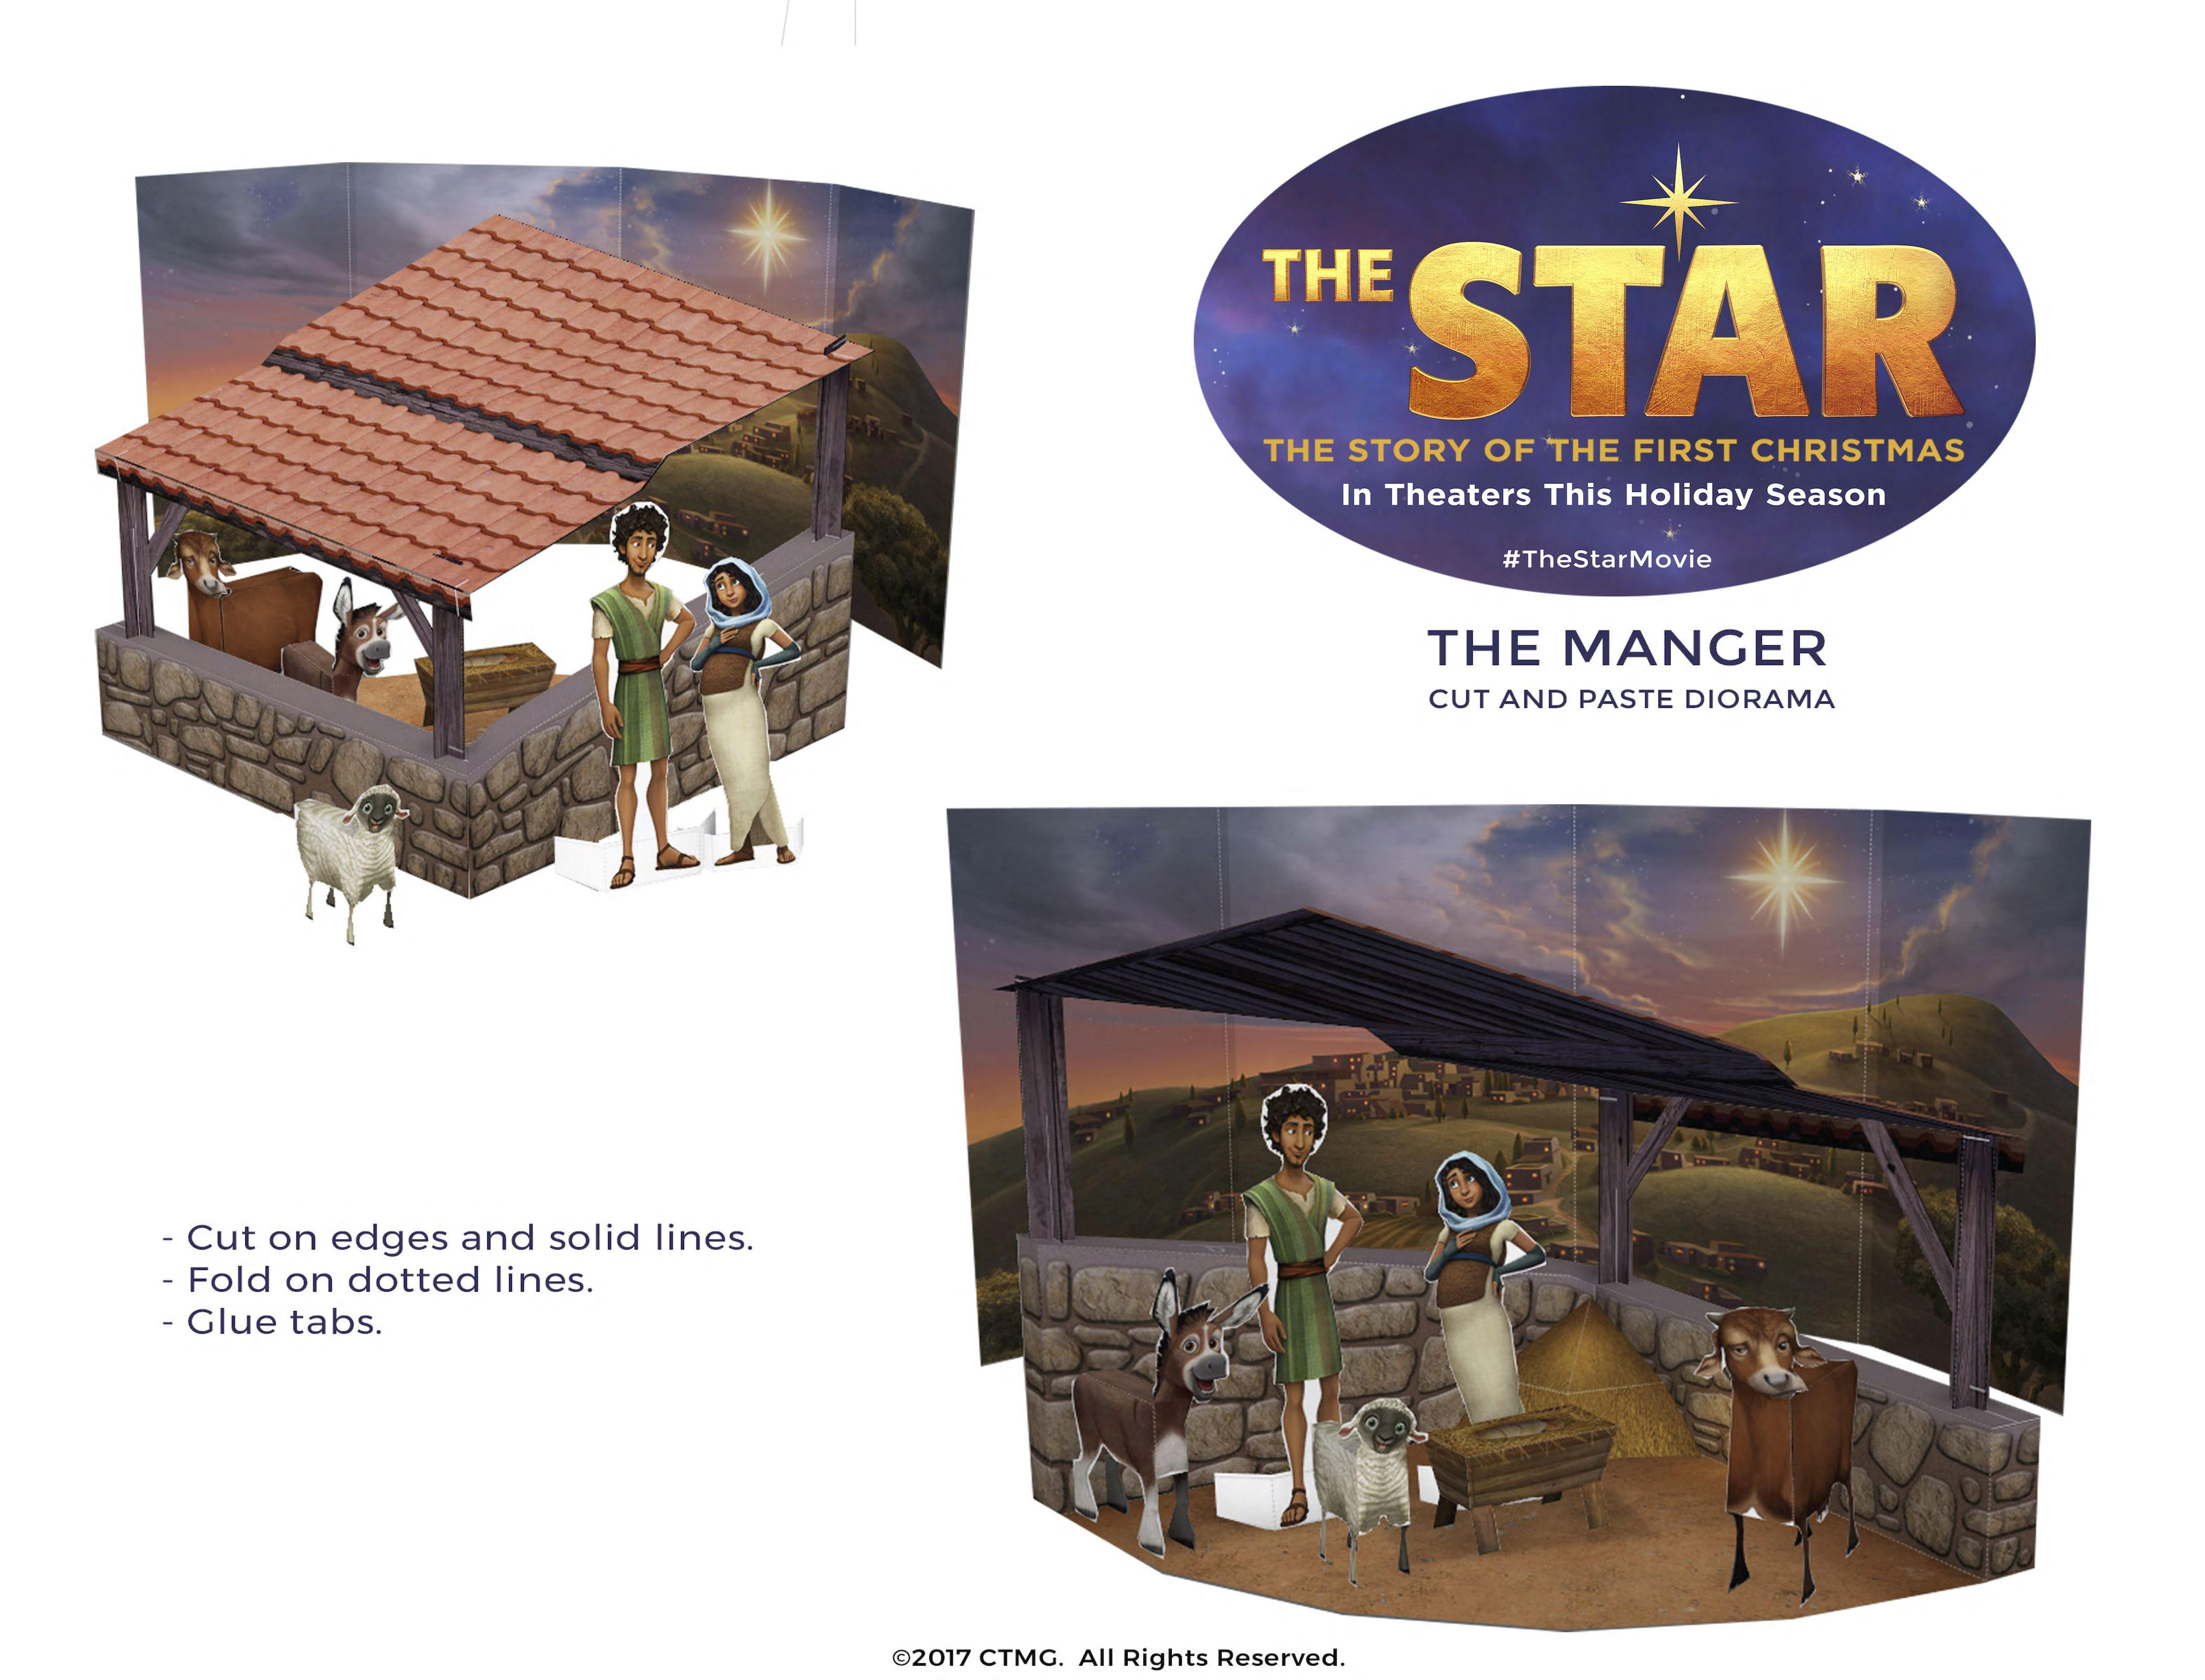 image relating to Printable Diorama titled This cost-free printable diorama of the nativity scene in opposition to